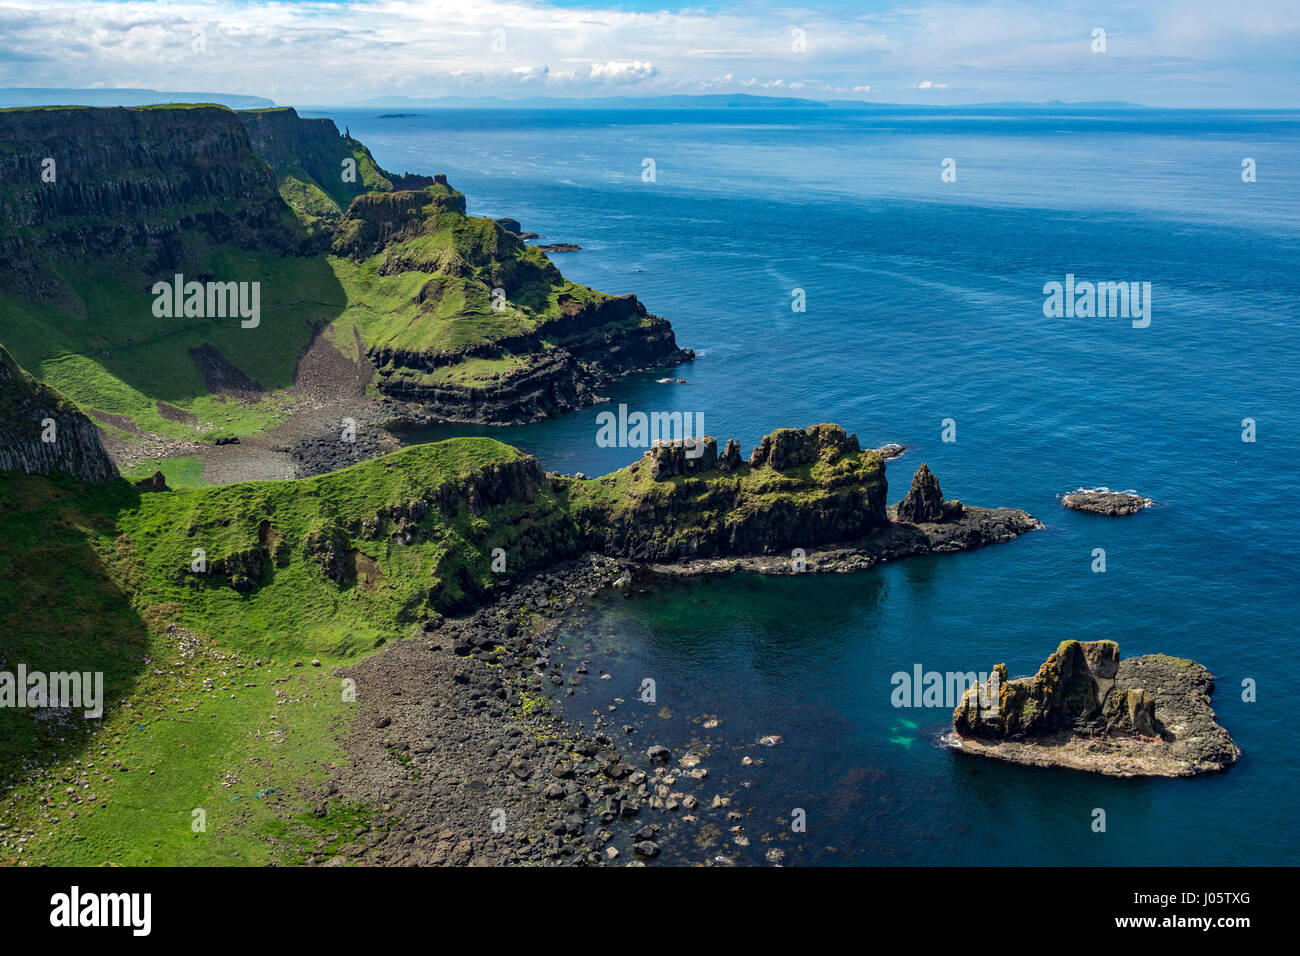 Cliff scenery at Port na Plaeskin, from the Causeway Coast footpath, County Antrim, Northern Ireland, UK Stock Photo